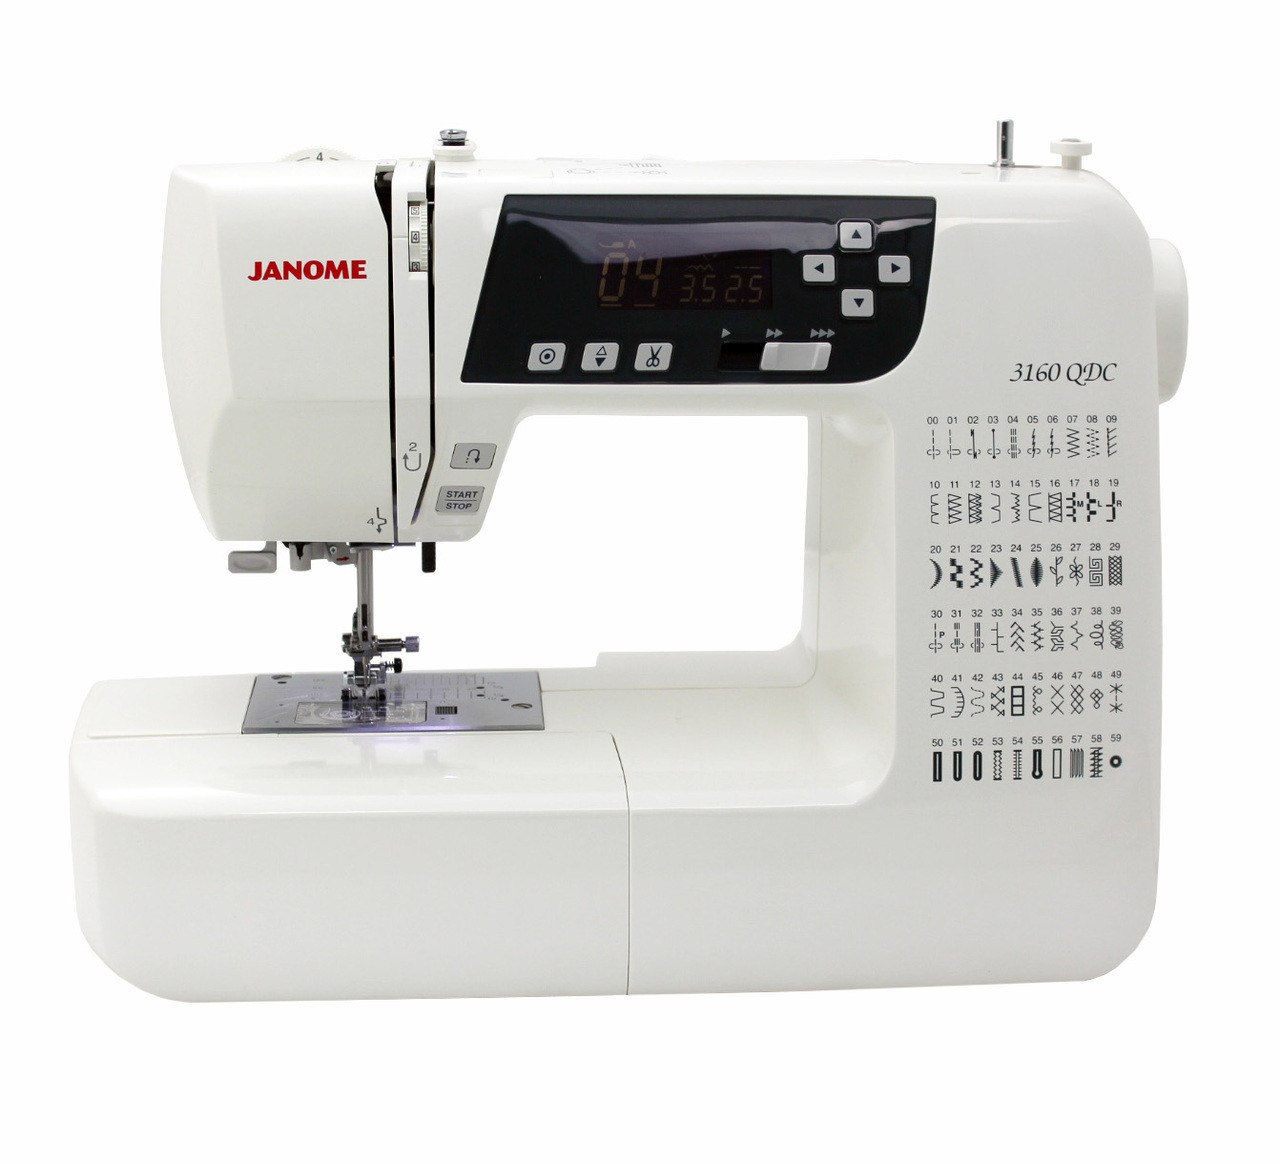 Janome 3160QDC Computerized Sewing Machine - Refurbished ...